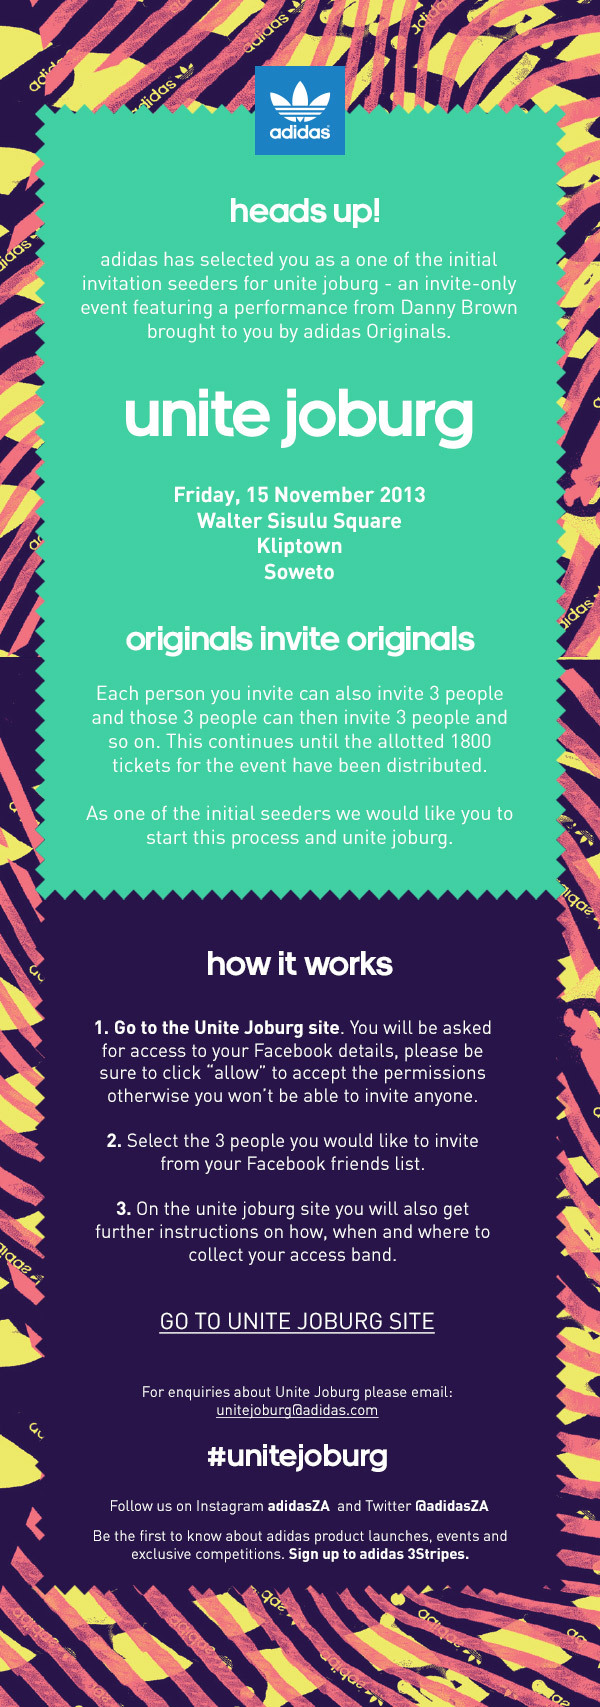 adidas-Originals-Unite-Joburg-Initial-ticket-seeder-invitation-email.jpg